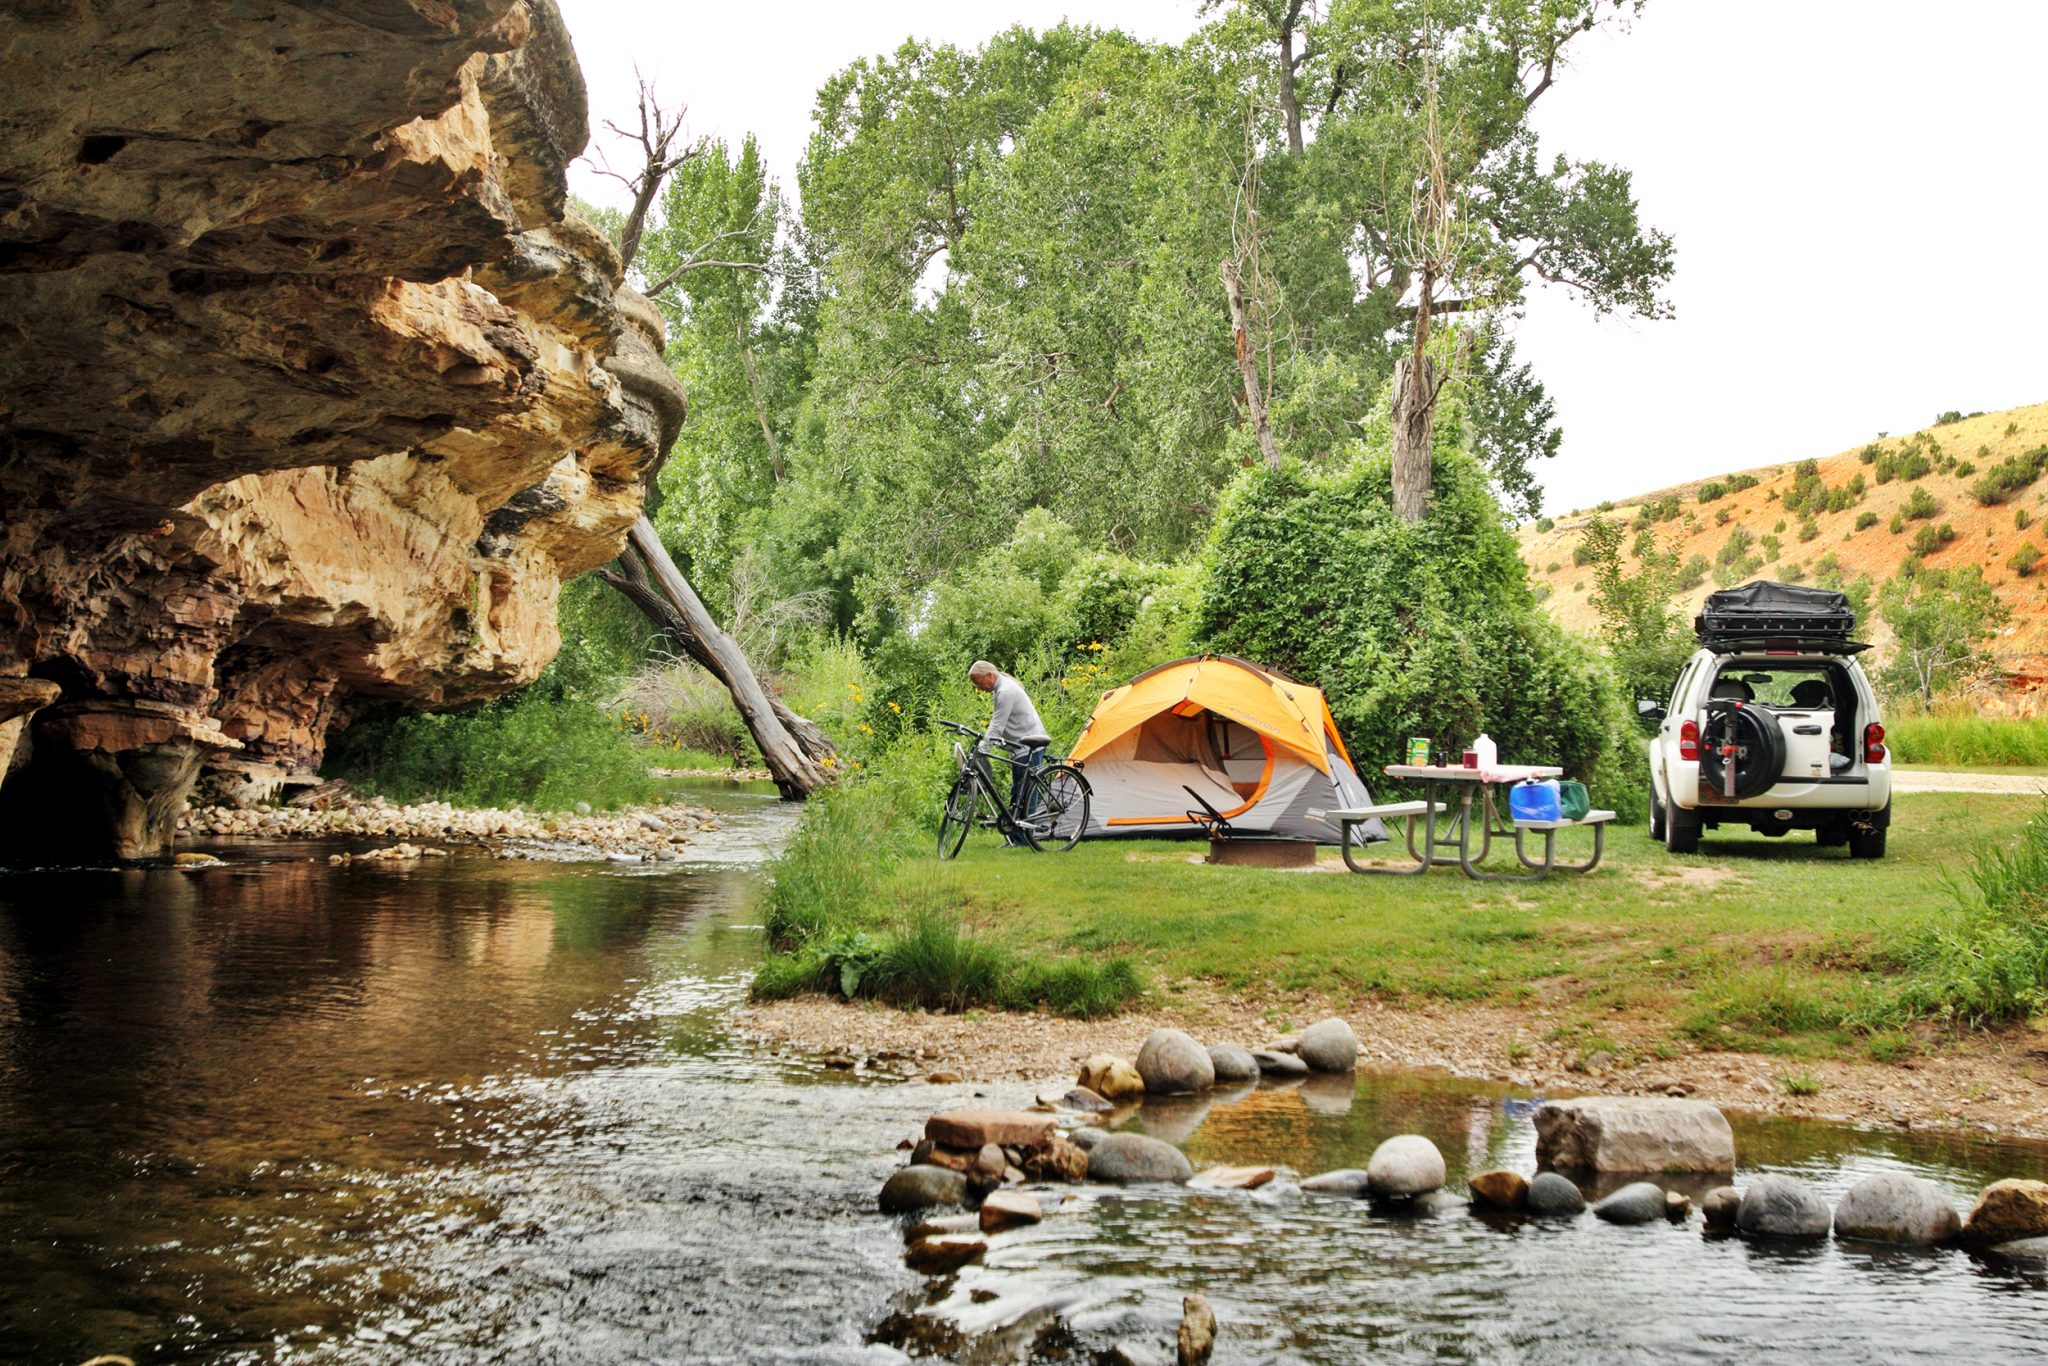 (H/t Wyoming State Parks, a Division of Wyoming State Parks & Cultural Resources)